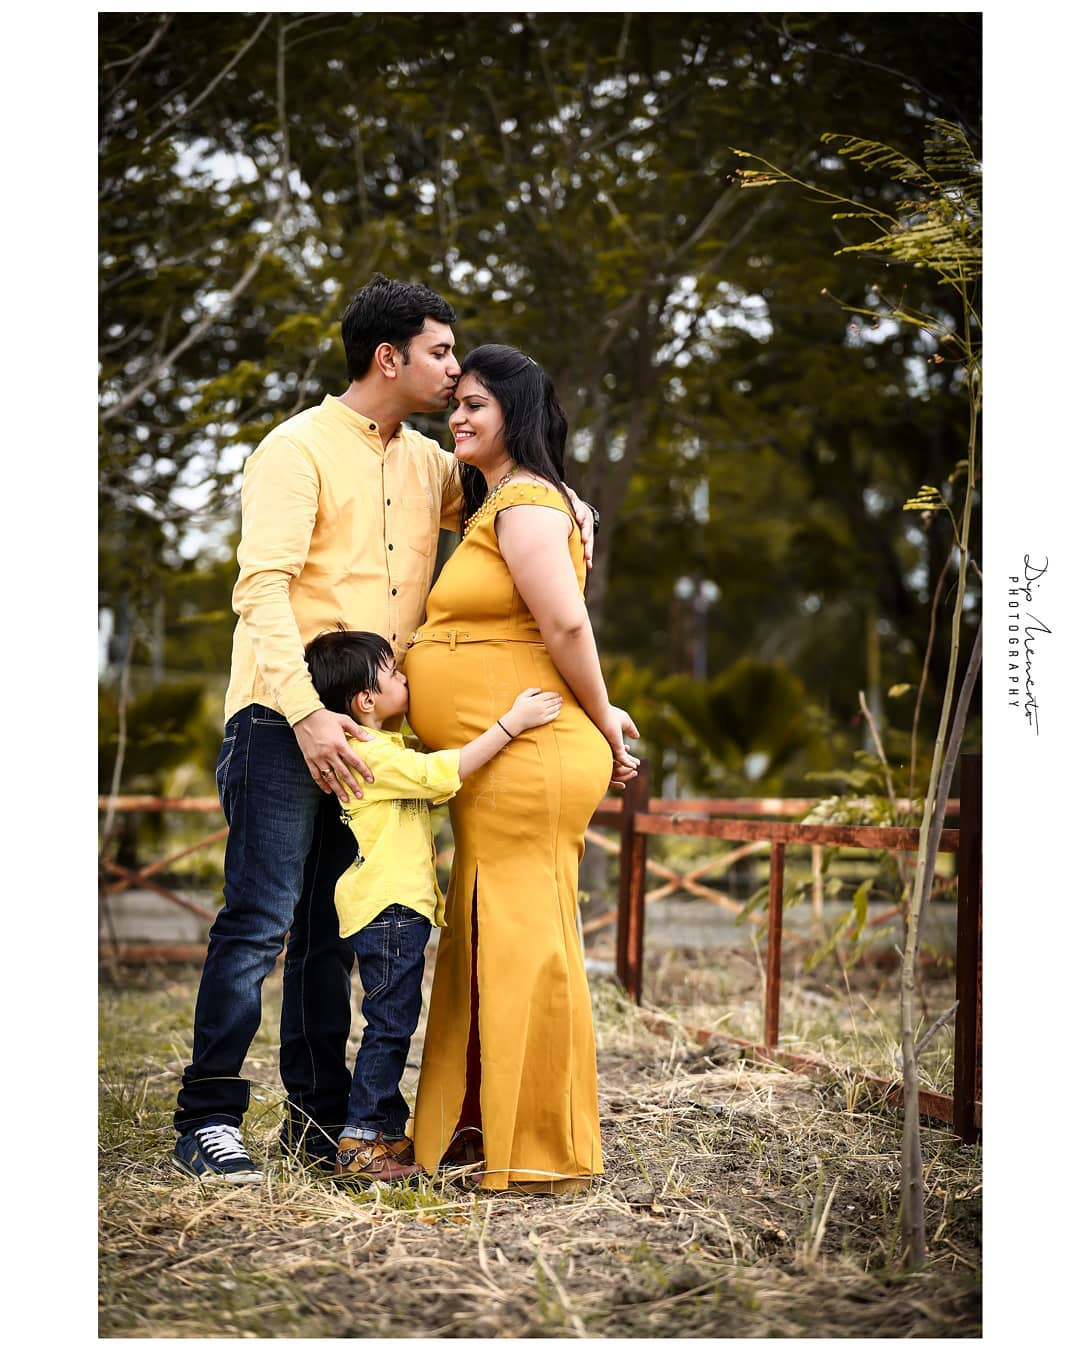 💞 She  The Mother, The Lover, The Creator, The Goddes!!!!💕👶 . .  Shoot by : @dip_memento_photography . . Maternity Shoot. . . Shoot With Canon 5d Mark iv + #Godox Hss @canonindia_official . #maternityphotographer #maternityphotography #maternity #mommytobe #momtobe #newmommy #pregnant #pregnancy #expectingmother #9924227745 #maternityportraits #maternitypictures #motherhood #maternityshoot #babybump #daddytobe #dadtobe #babyiscomingsoon #thebump #maternityshoot #maternityphotographyahmedabad #dipmementophotography #ahmedabadphotographer #mothertobe #expectingbaby #BABYBUMP #maternityposes #maternityposing